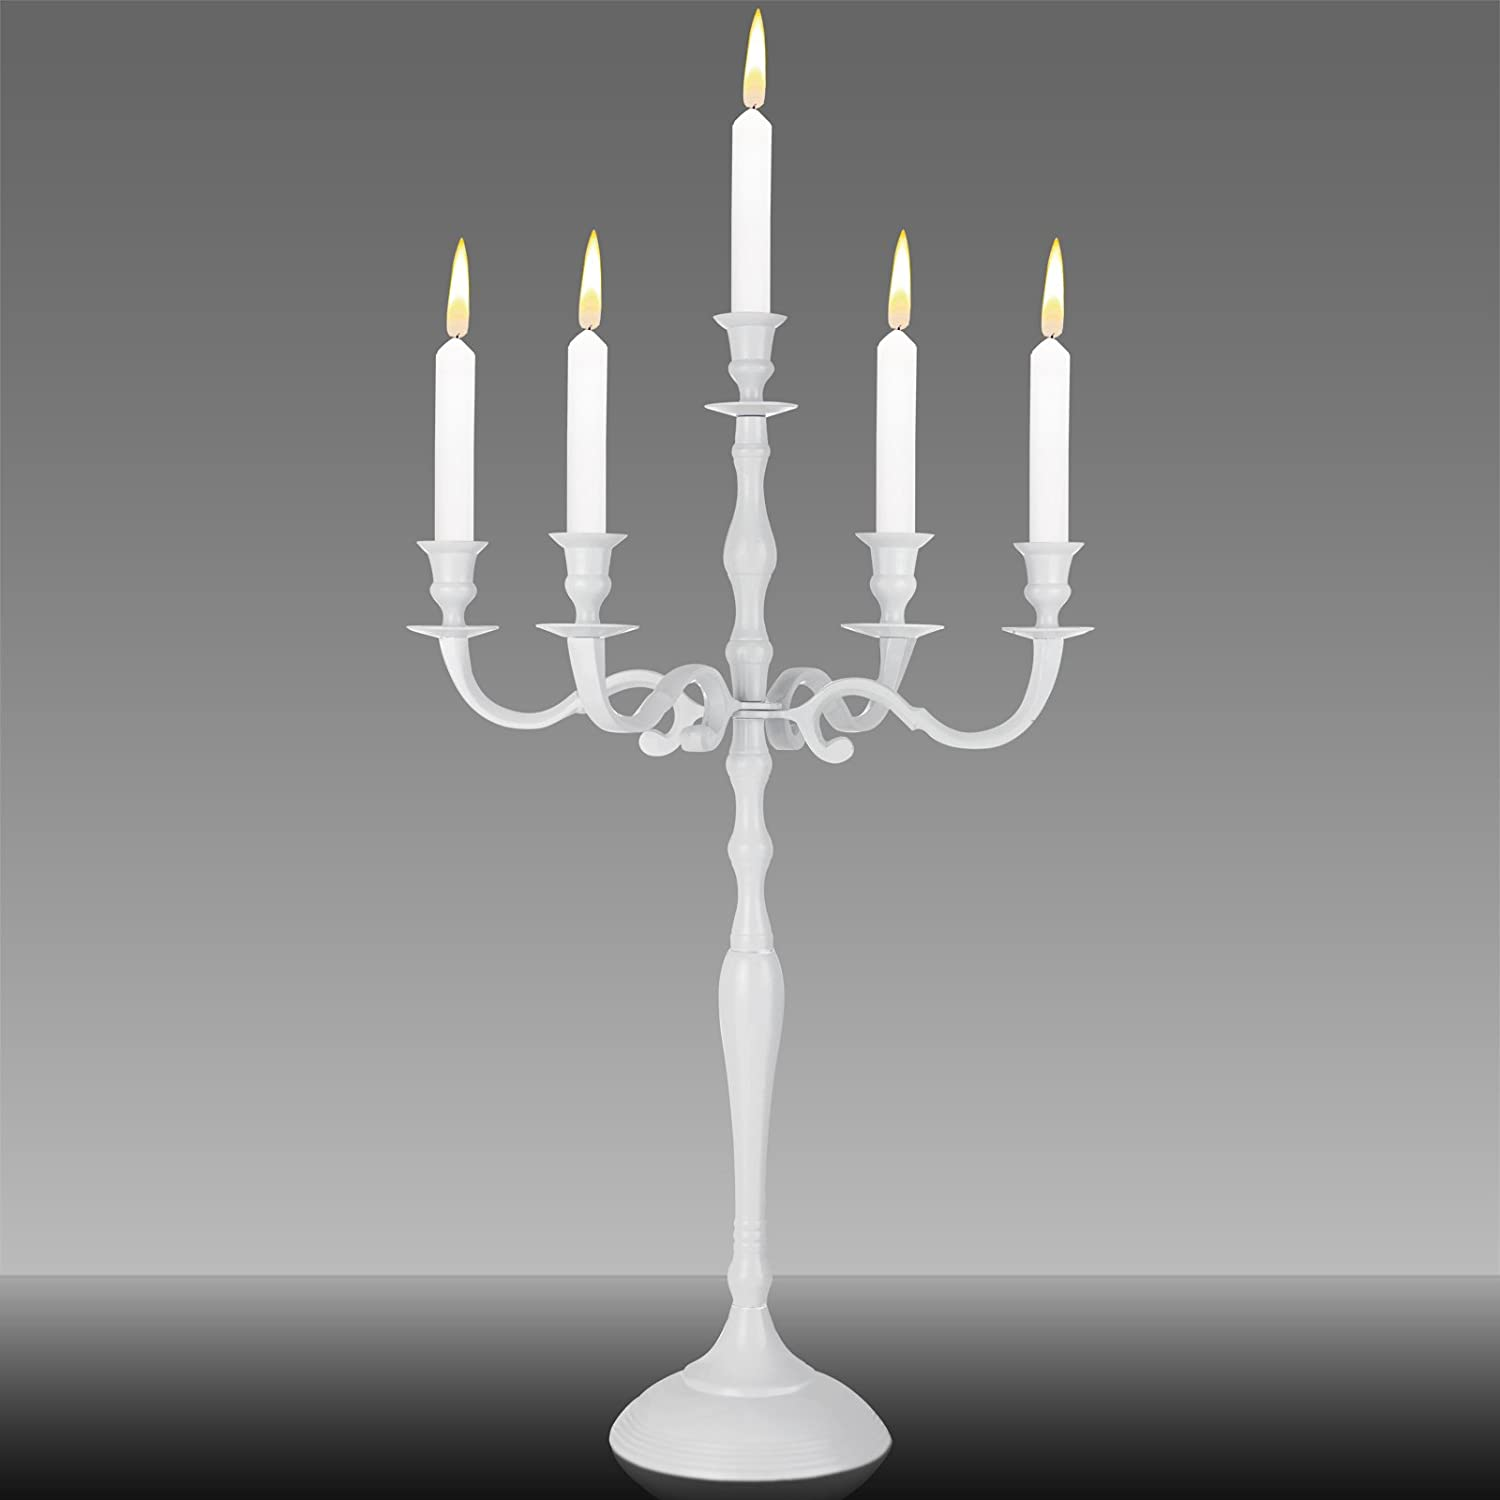 Deuba Metal Candelabra, Baroque Style Candlestick, 3 or 5-armed Candle Stand, Candle Holder, Weddings & Events | Convertible | 40cm 60cm or 78cm | Silver Gold or White DEUBA GmbH & Co. KG